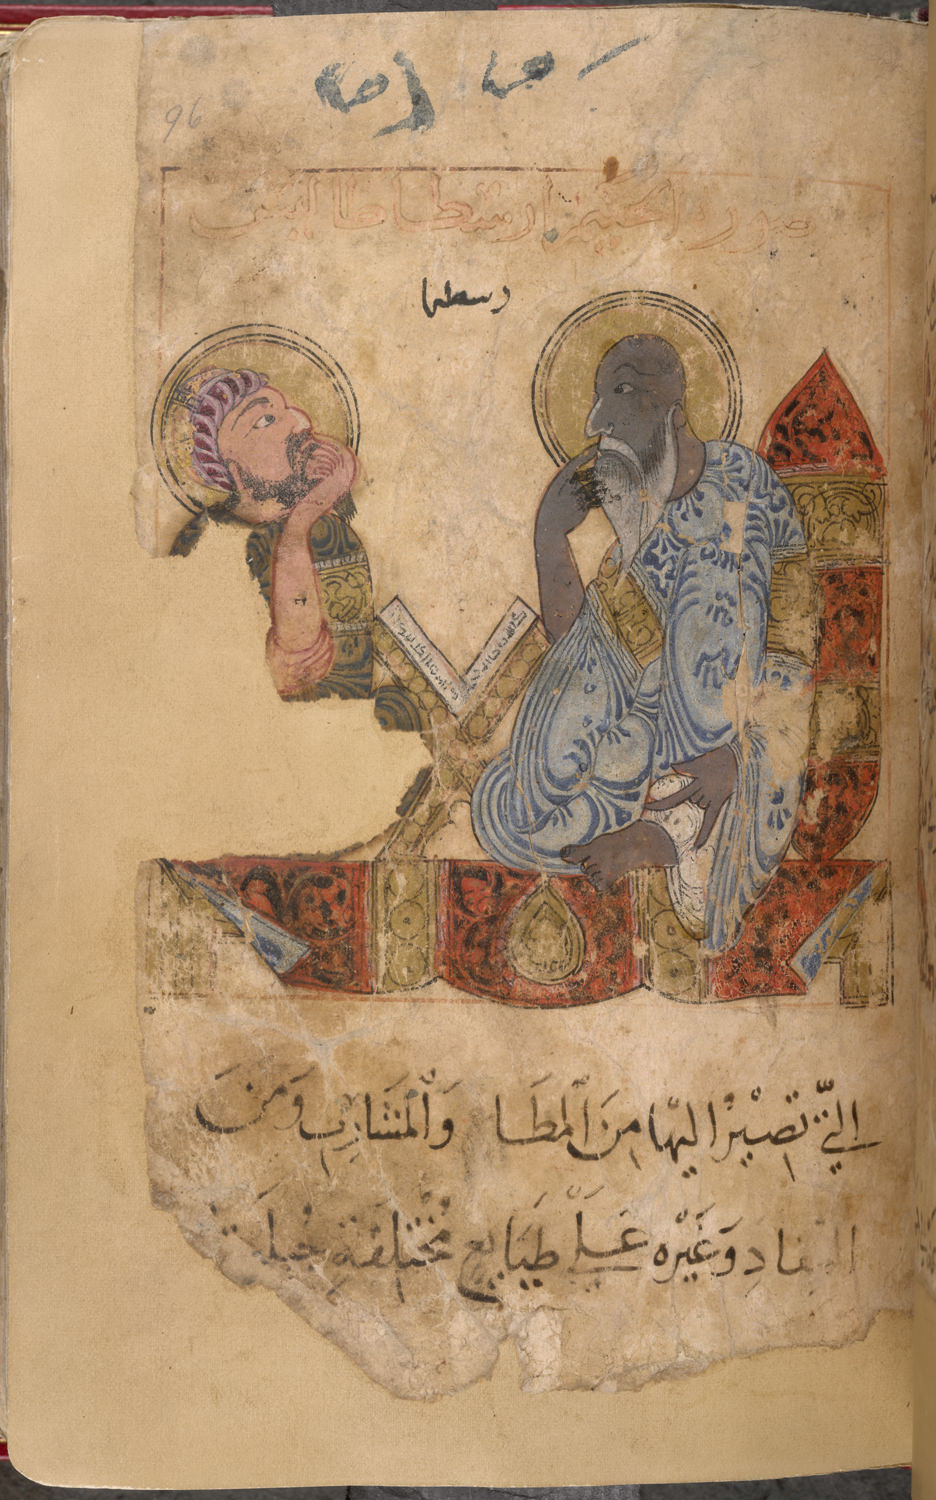 Or.2784, folio 96r Miniature depicting Aristotle instructing Alexander the Great, from The Description and Uses of Animals compiled from works by Aristotle and 'Ubayd Allah ibn Bakhtishu. The undated copy was probably made in Baghdad in the first half of the 13th century. Image courtesy the British Library